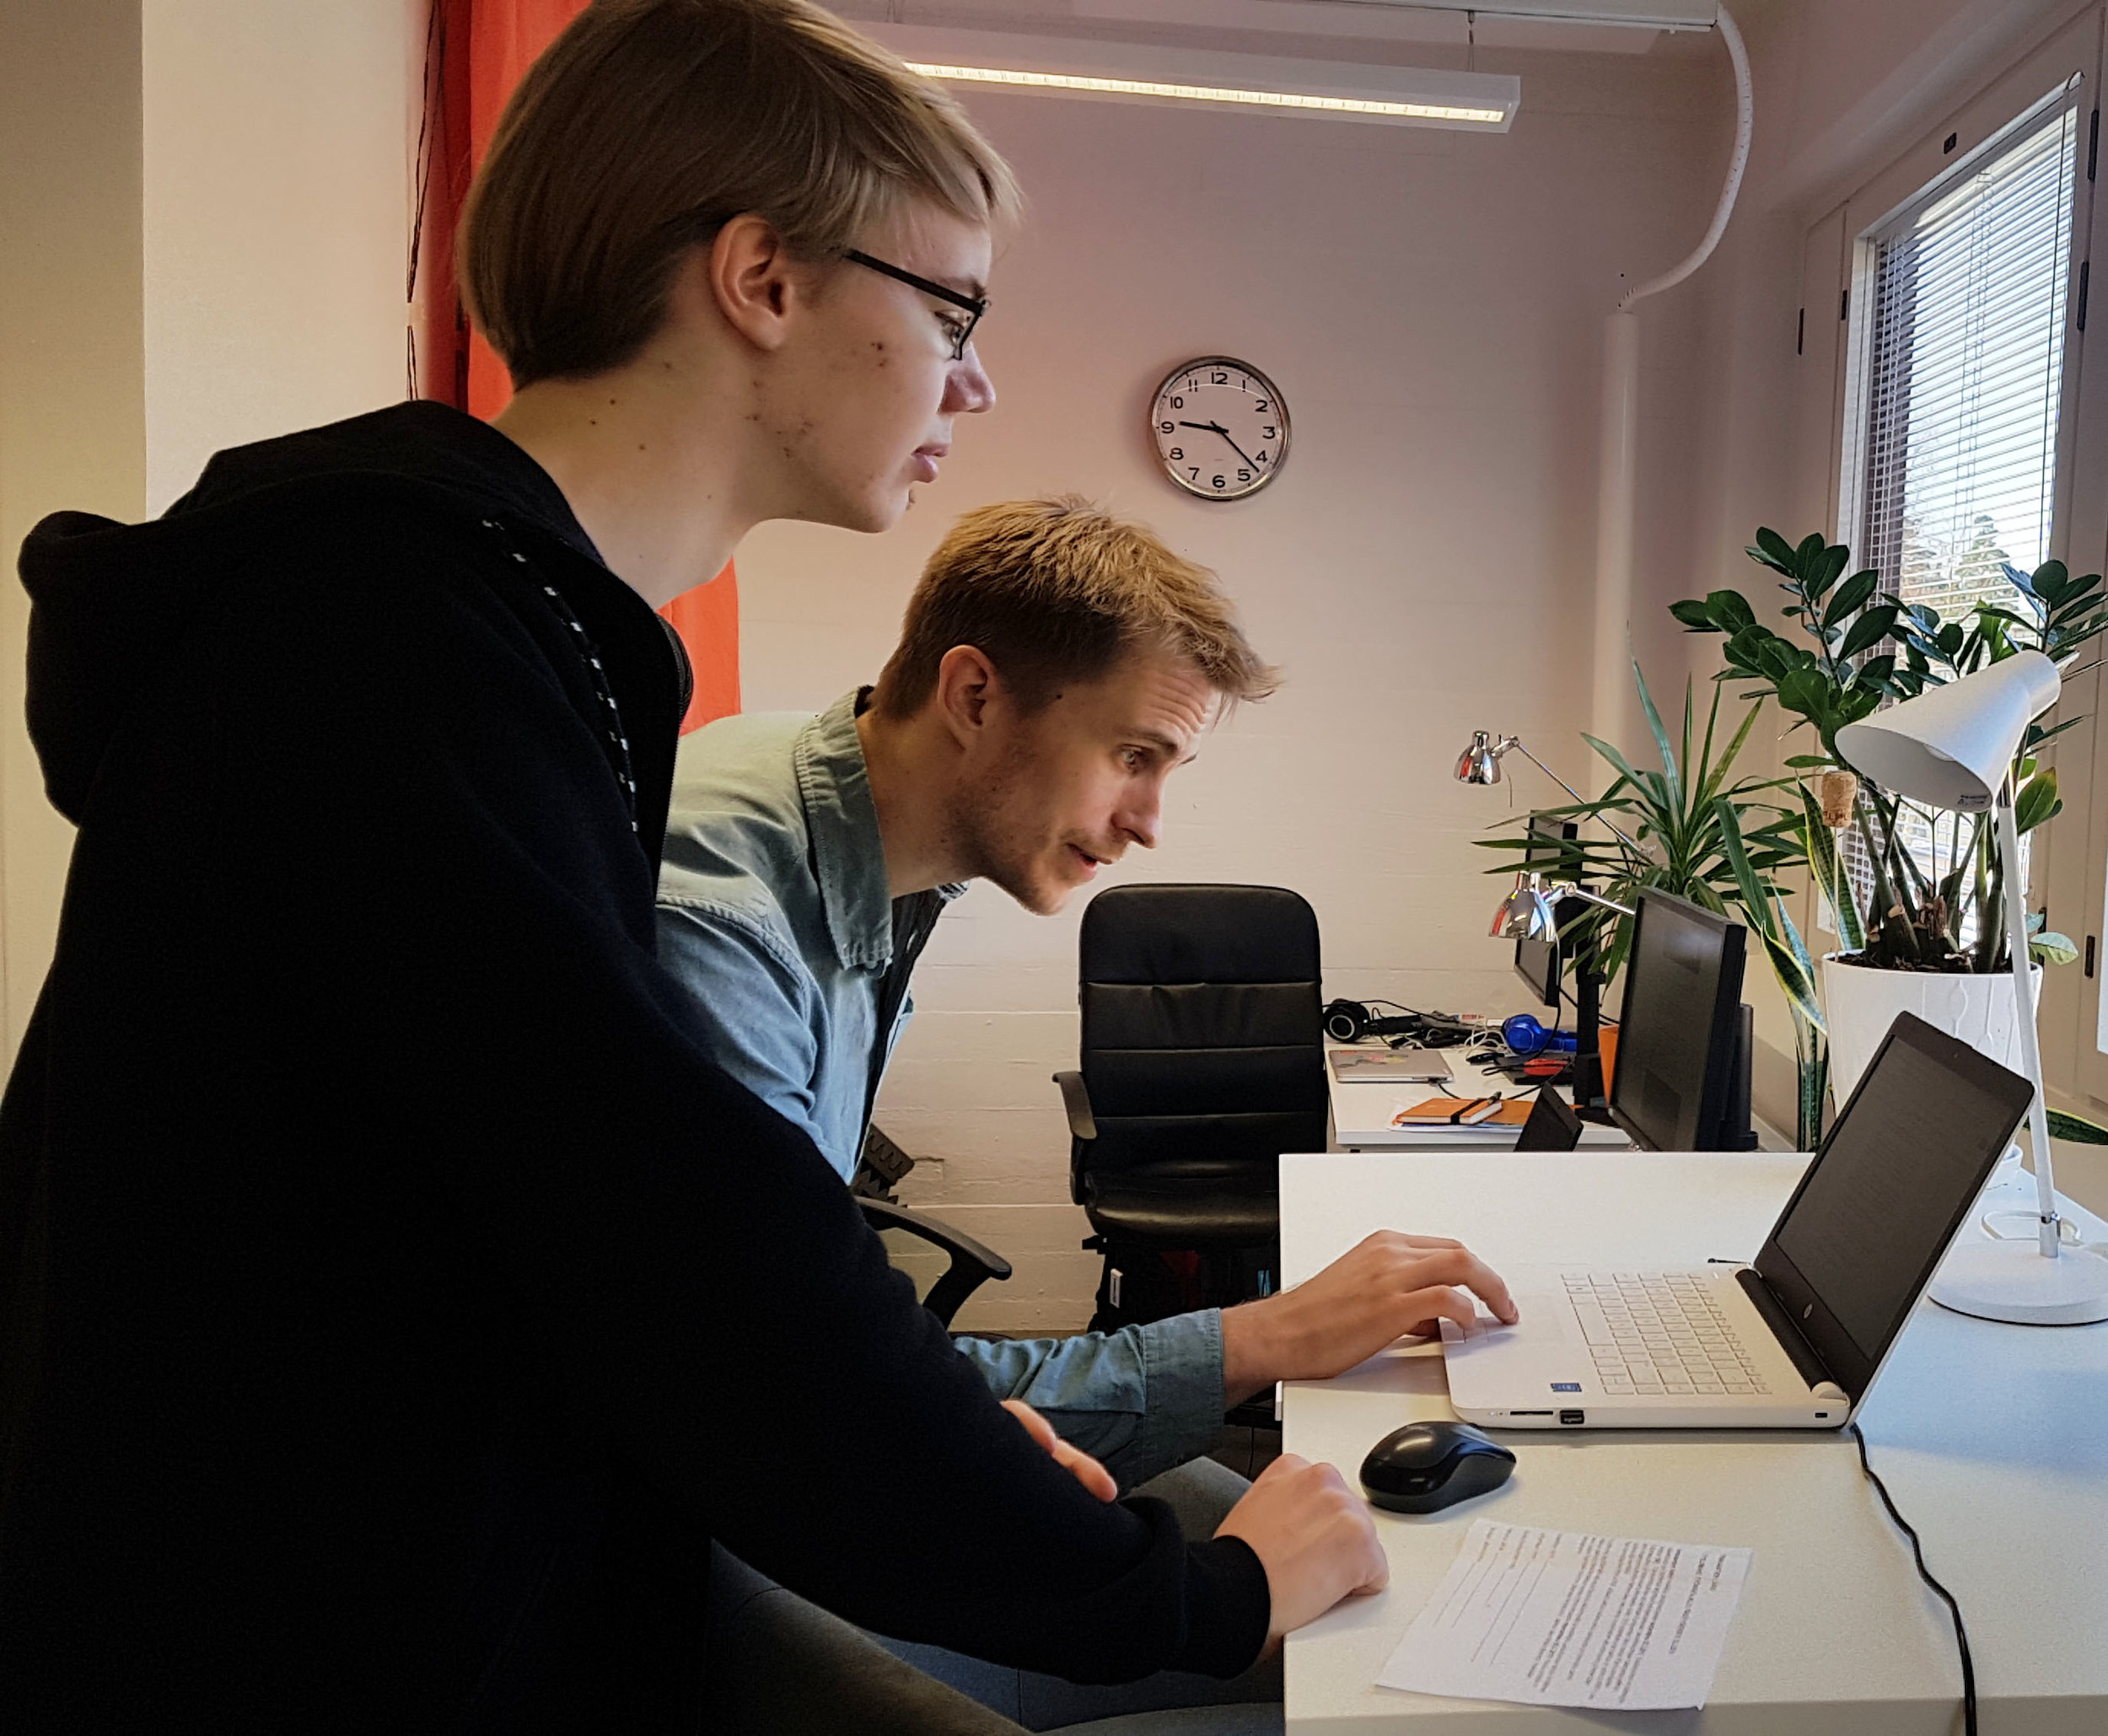 Harri and Mikko (our CPO) exploring Mehackit Atelier at Mehackit's office.